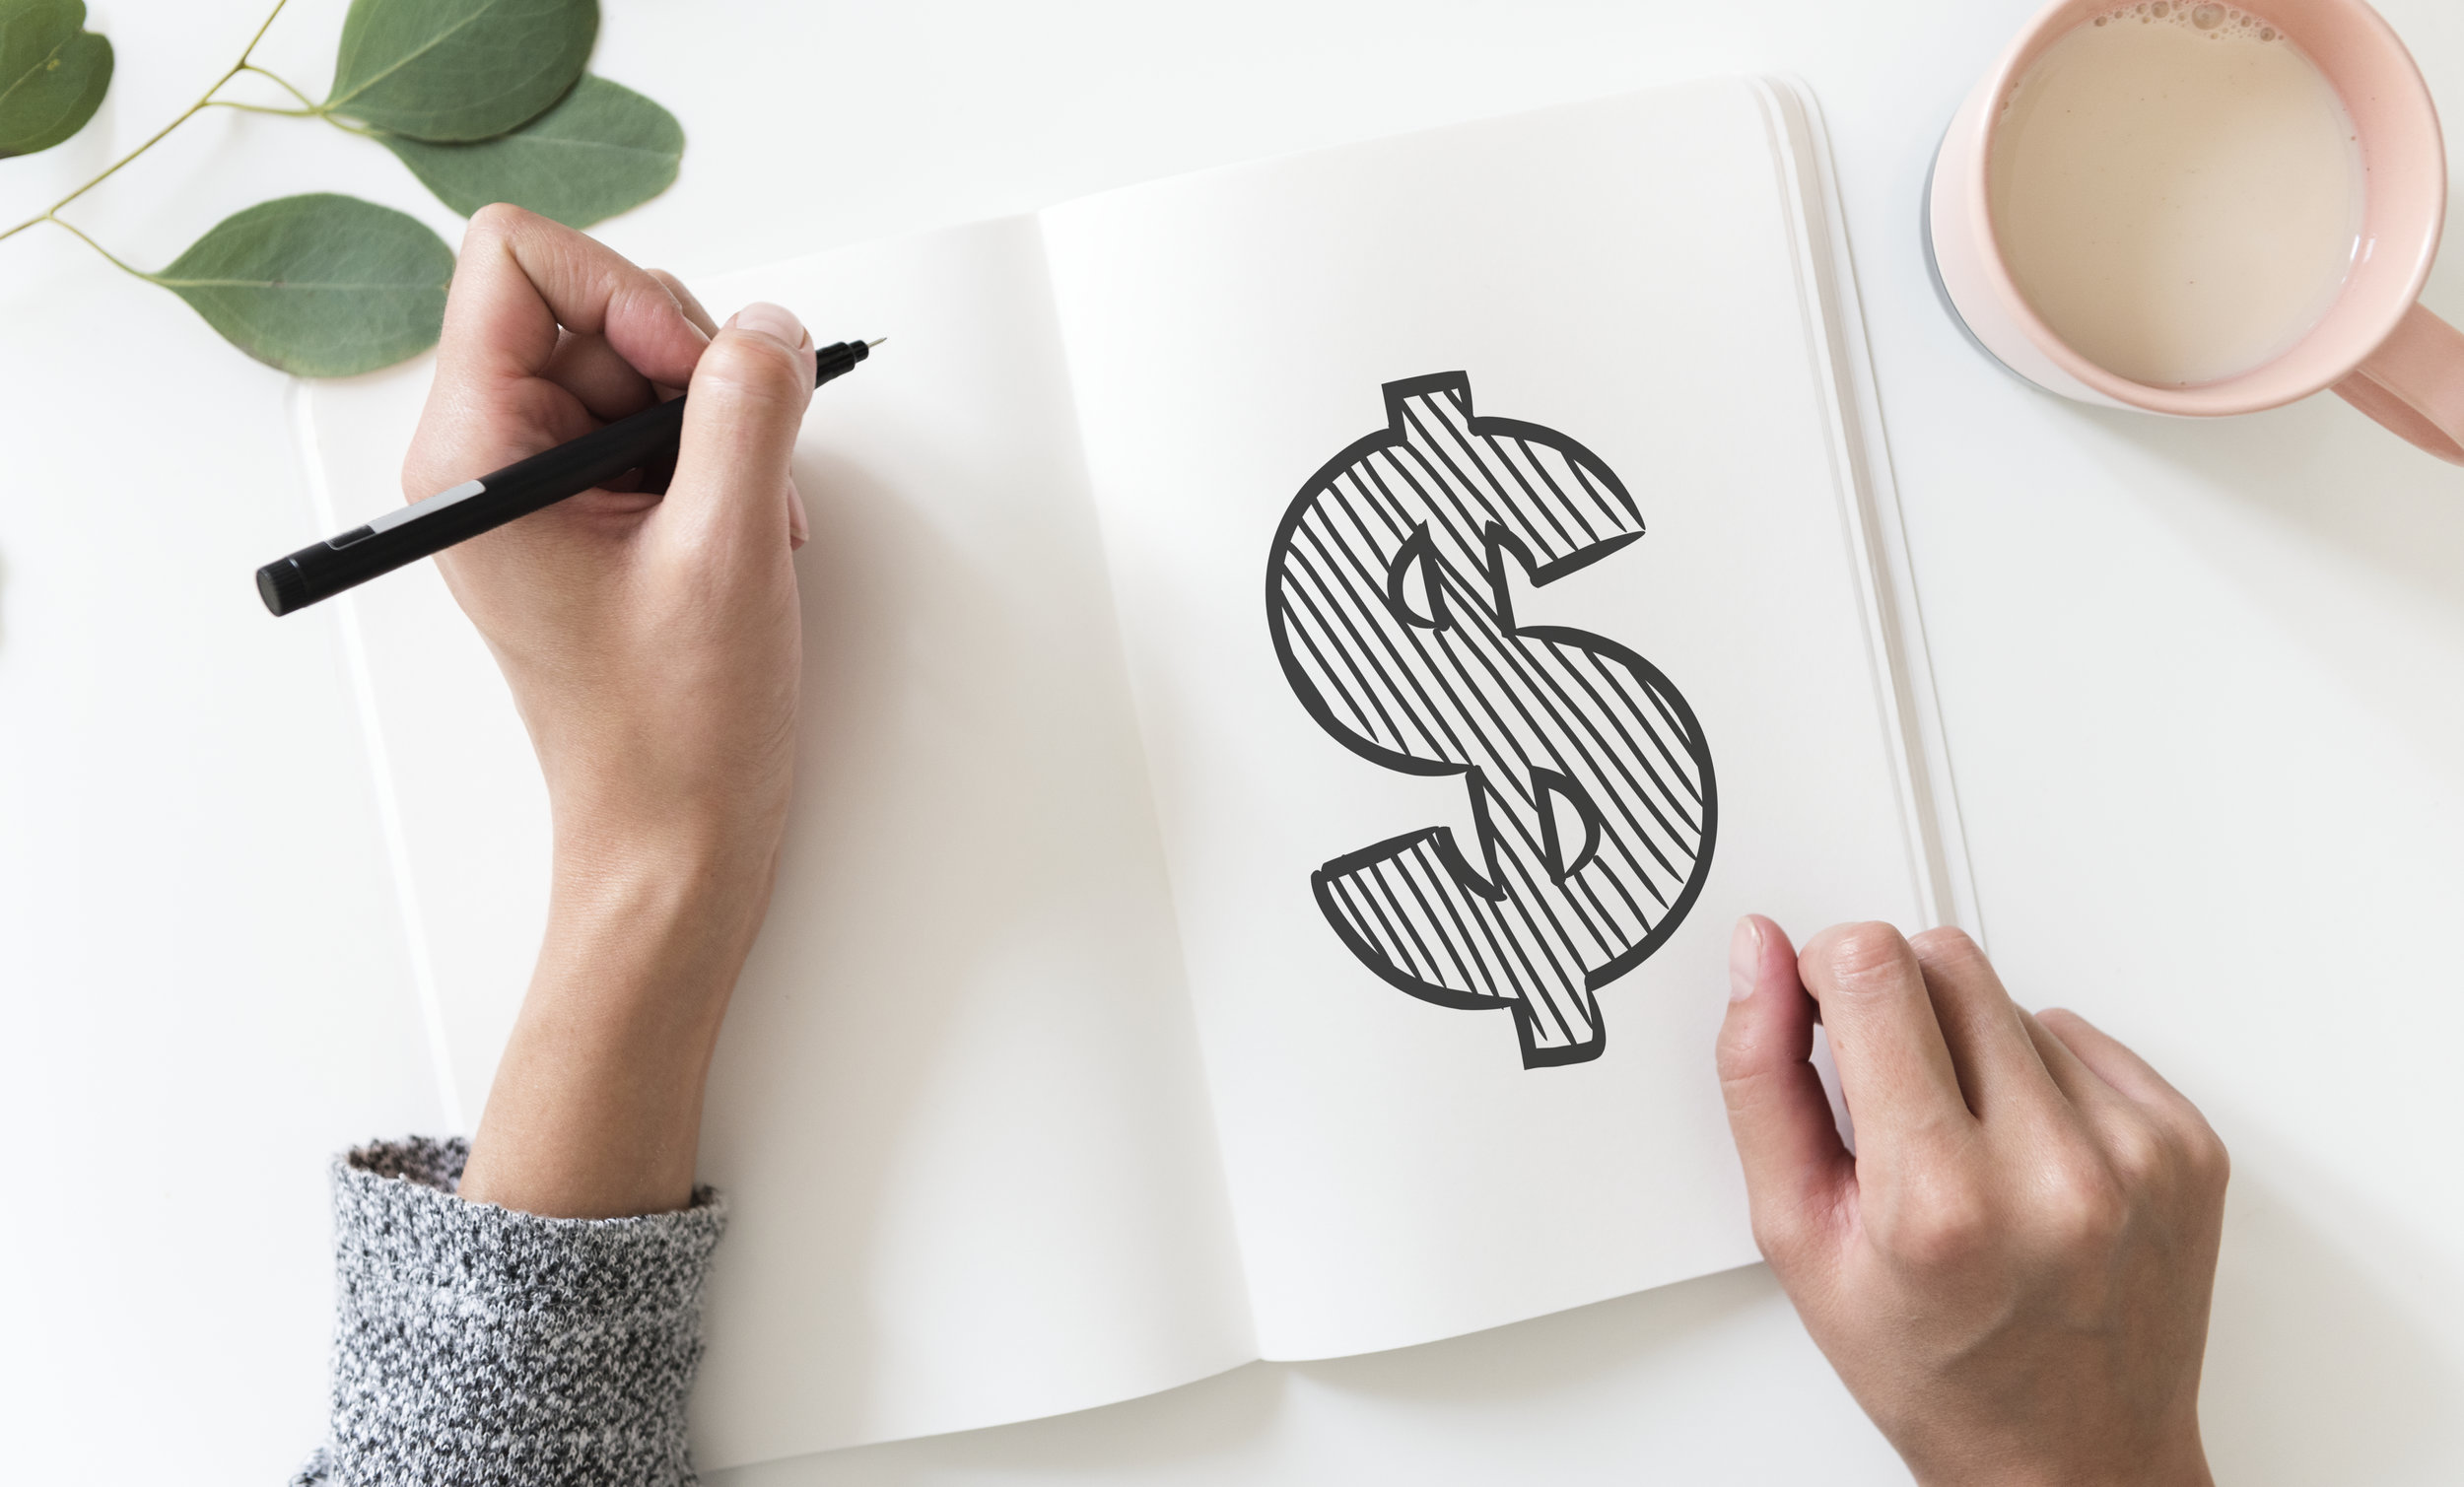 How to rebuild your finances after escaping financial abuse www.Relavate.org